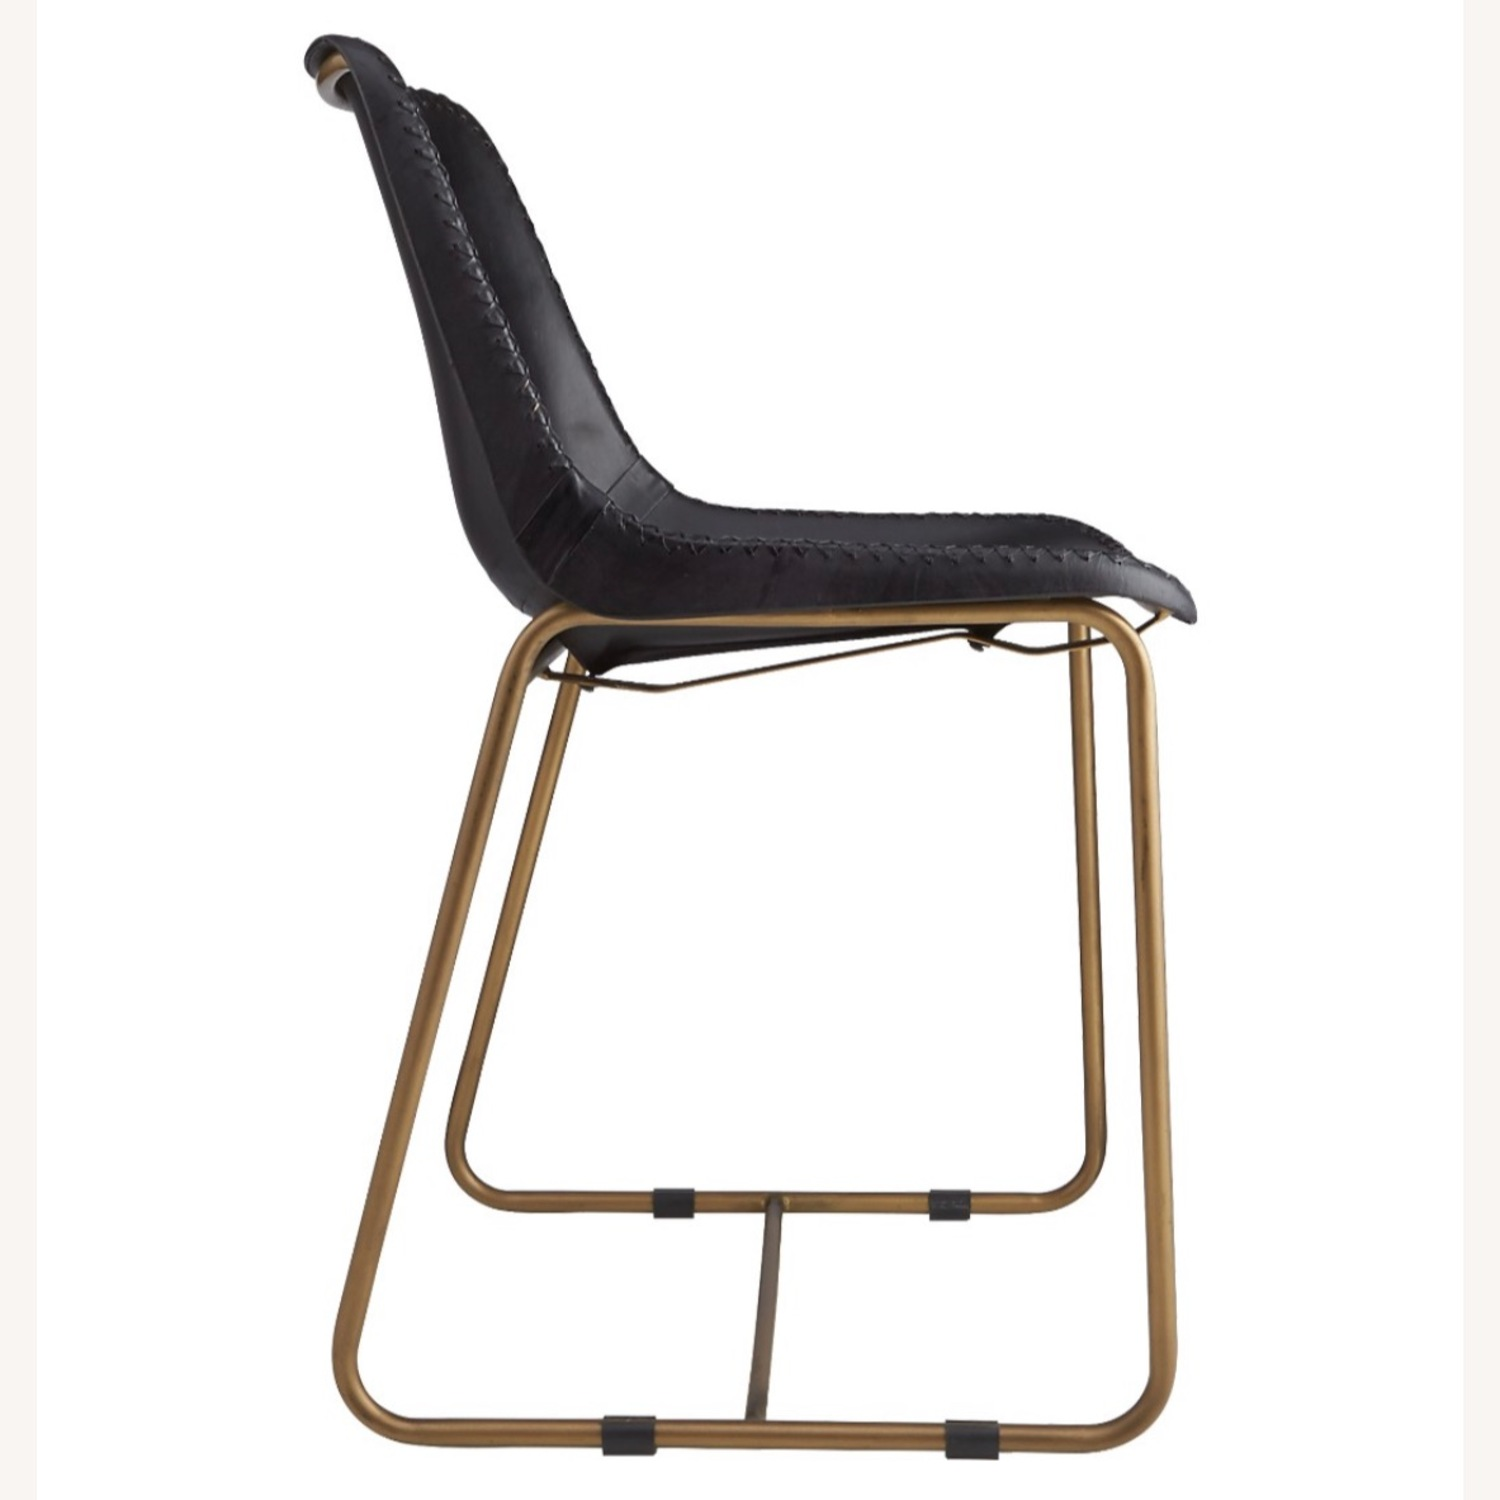 CB2 Roadhouse Black Leather Dining Chairs - image-3